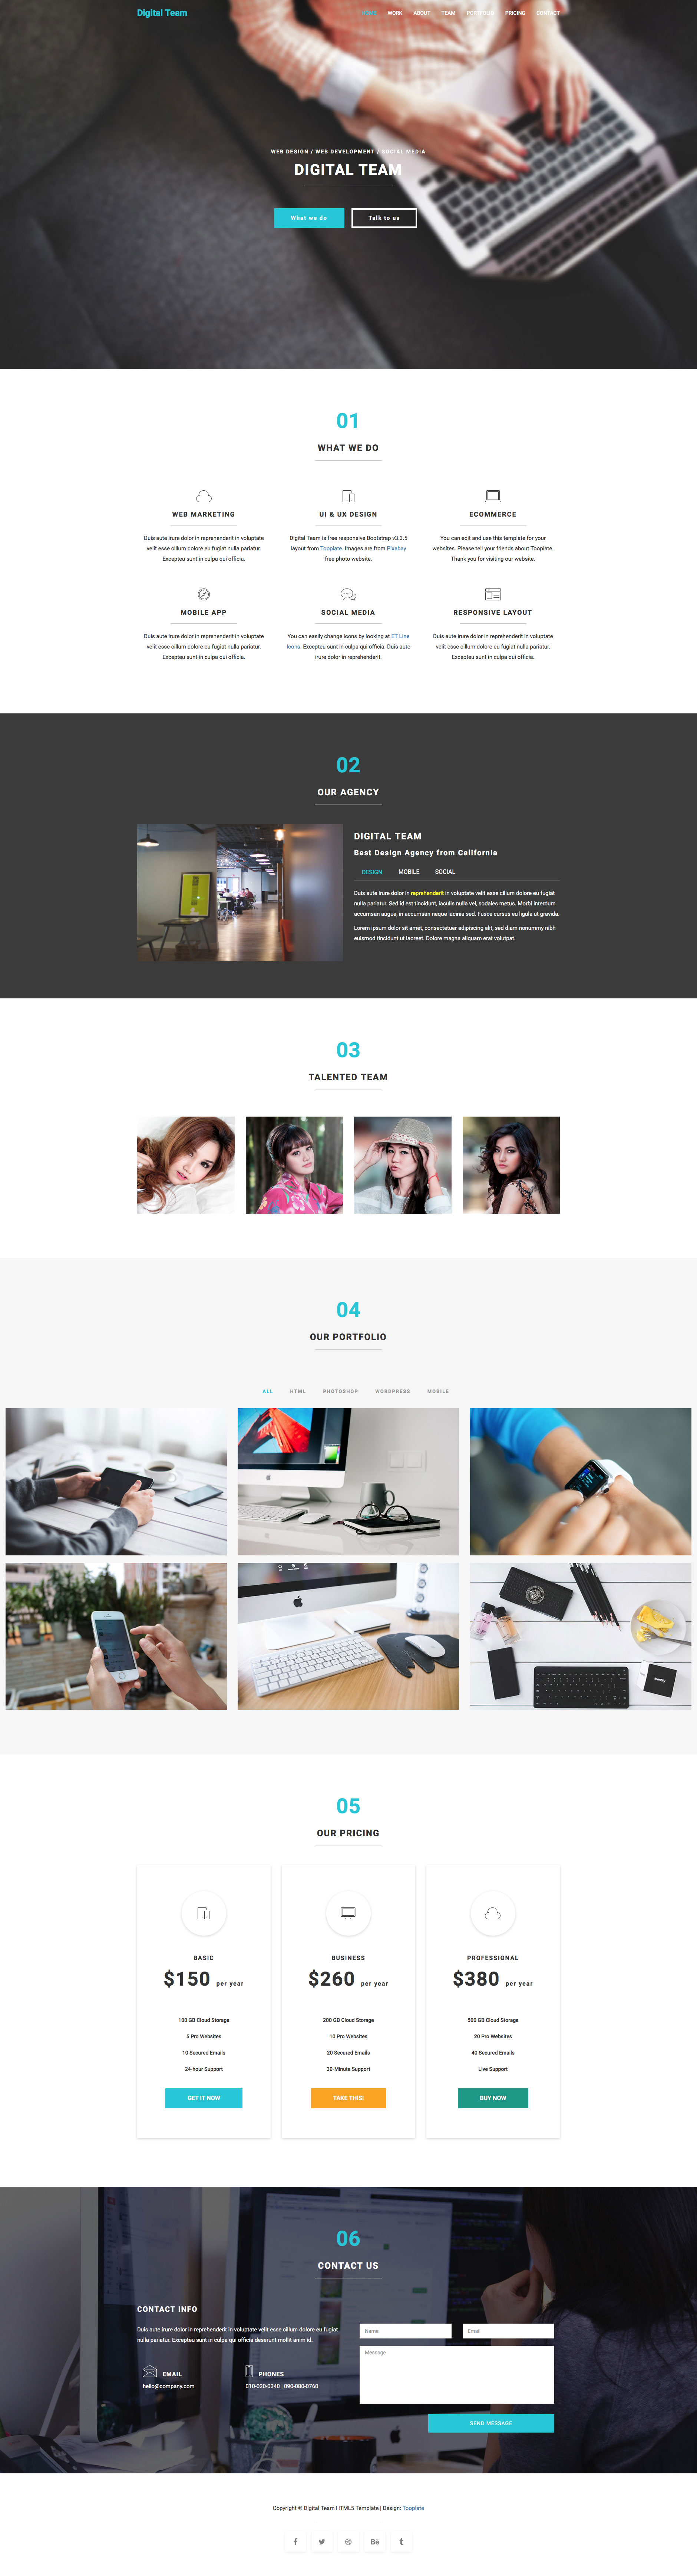 Digital Team is a free responsive multipurpose HTML5 template built with Bootstrap 3. It is an ideal choice for business or agency website. This template is features slideshow, line icons, content tabs, image gallery, pricing tables, and contact form.